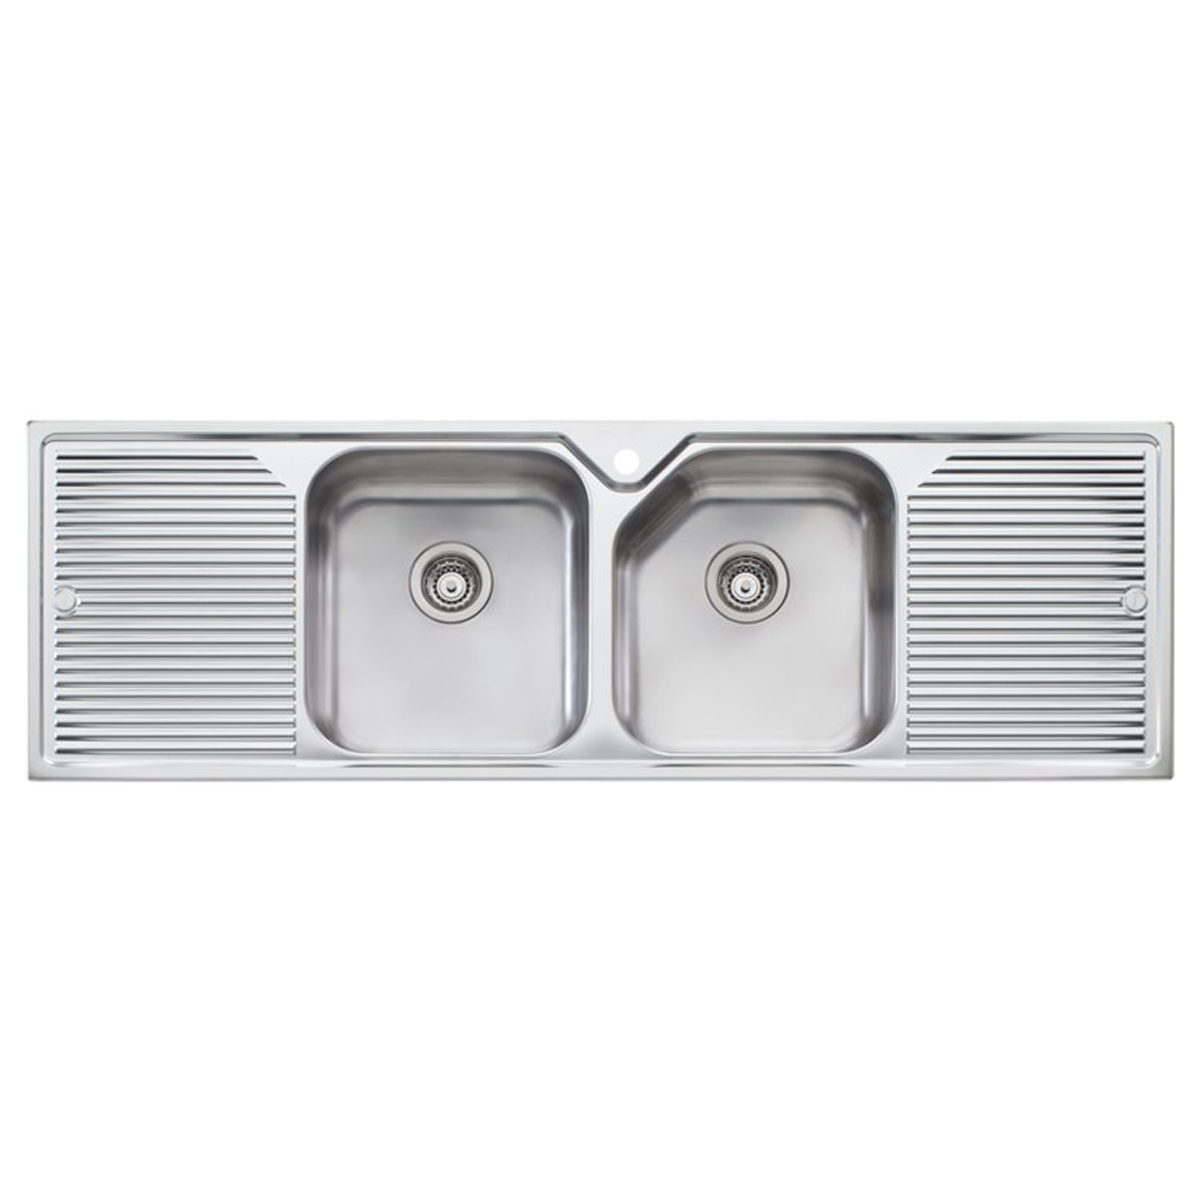 Oliveri NP653 Nu-Petite Double Bowl With Double Drainer Topmount Sink